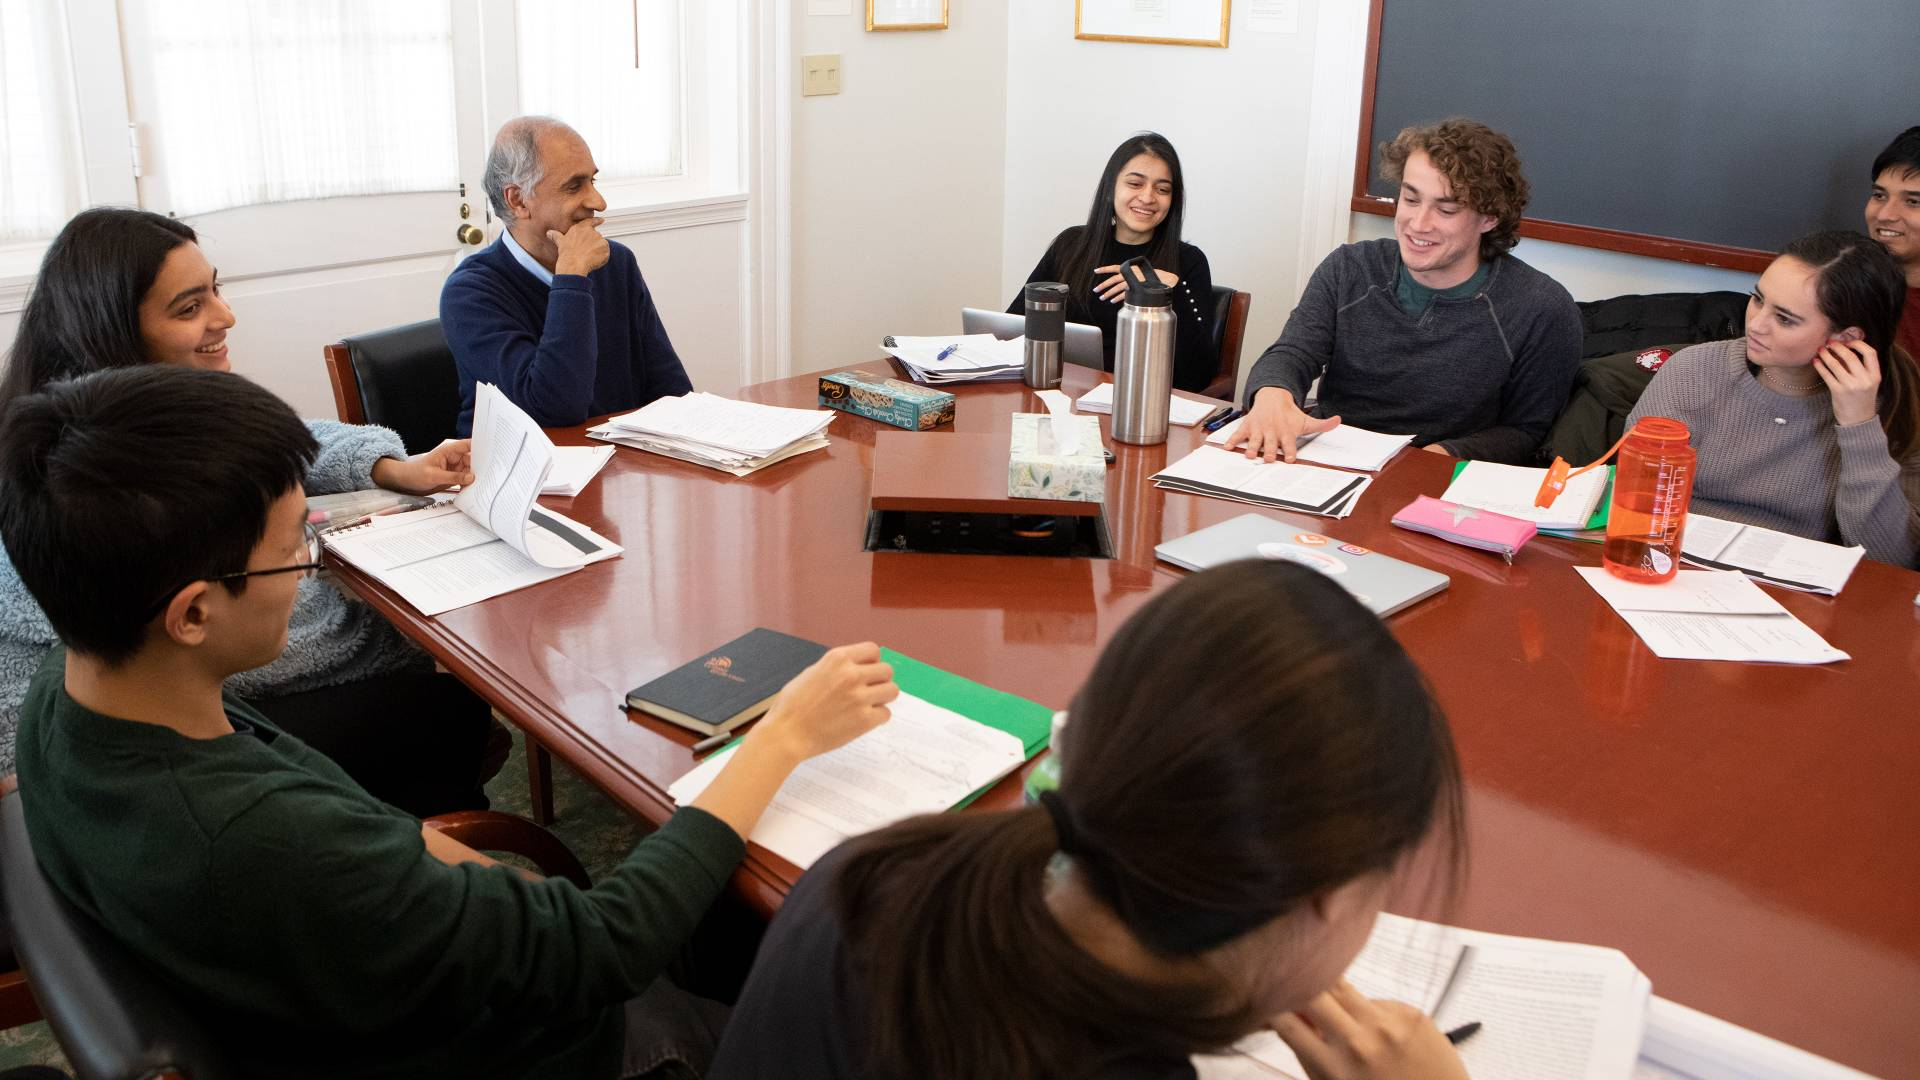 Pico Iyer listening to students during class